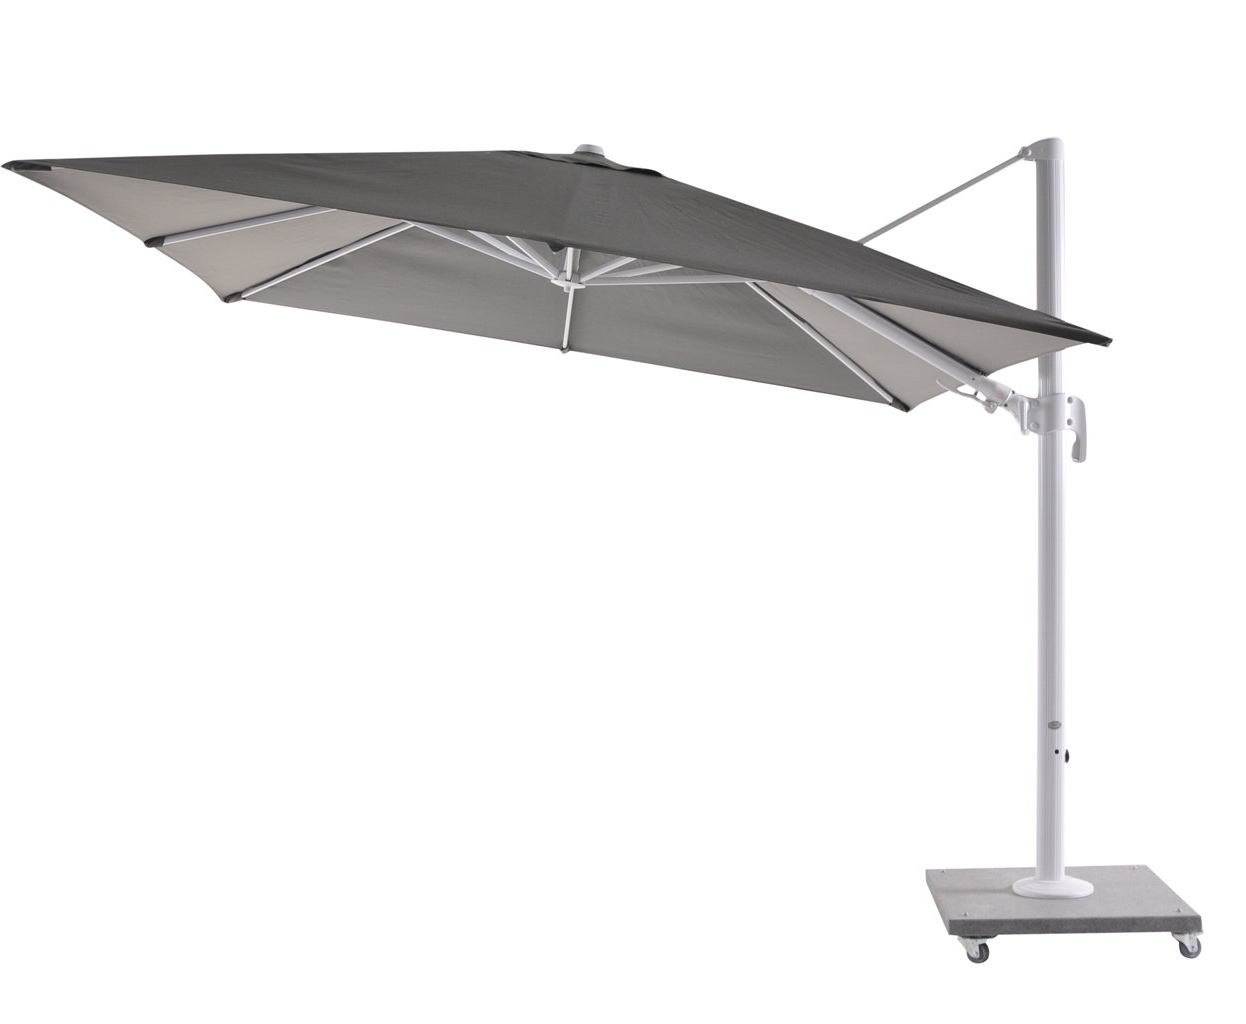 Block 10' Square Cantilever Umbrella Throughout Well Known Alyssa Cantilever Umbrellas (View 15 of 20)